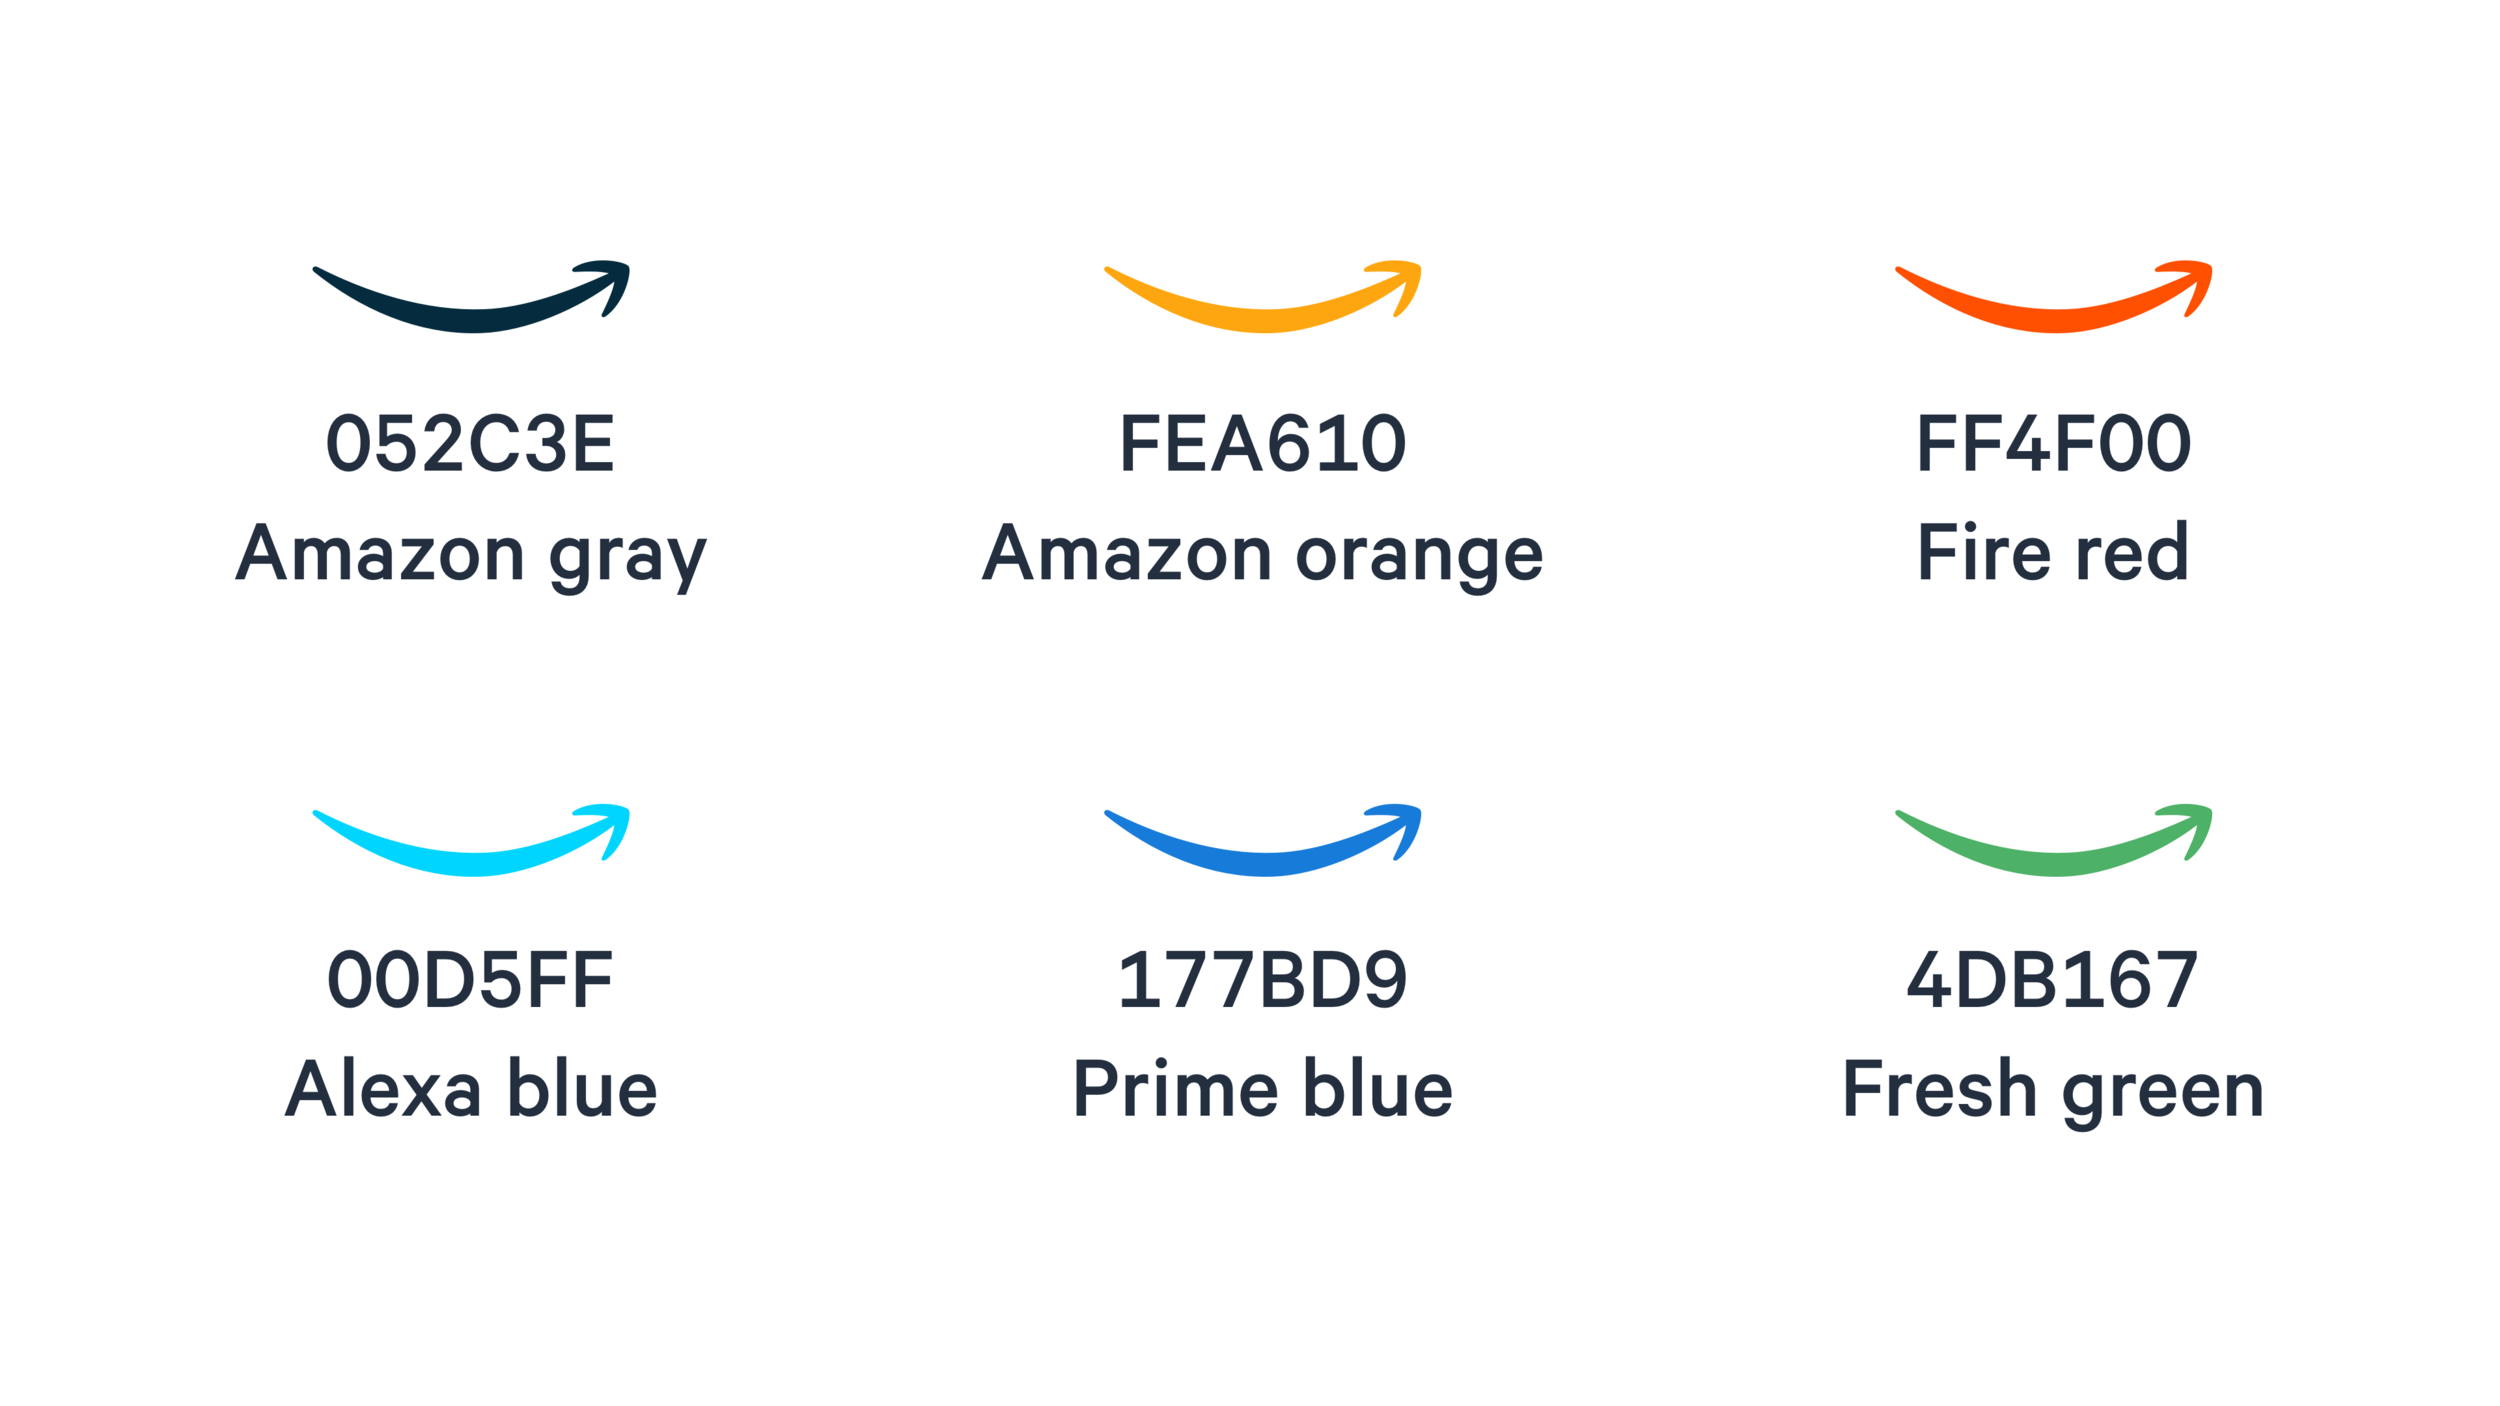 And a color system - After sifting through a lot of color combinations, I chose a base color, a characteristic Amazon orange for the core properties, a fiery red color for Fire and all the content brands, the Alexa cool blue color for Alexa and related brands, a deep blue for Kindle and related brands, and a green for all food-related brands and Amazon Pay.